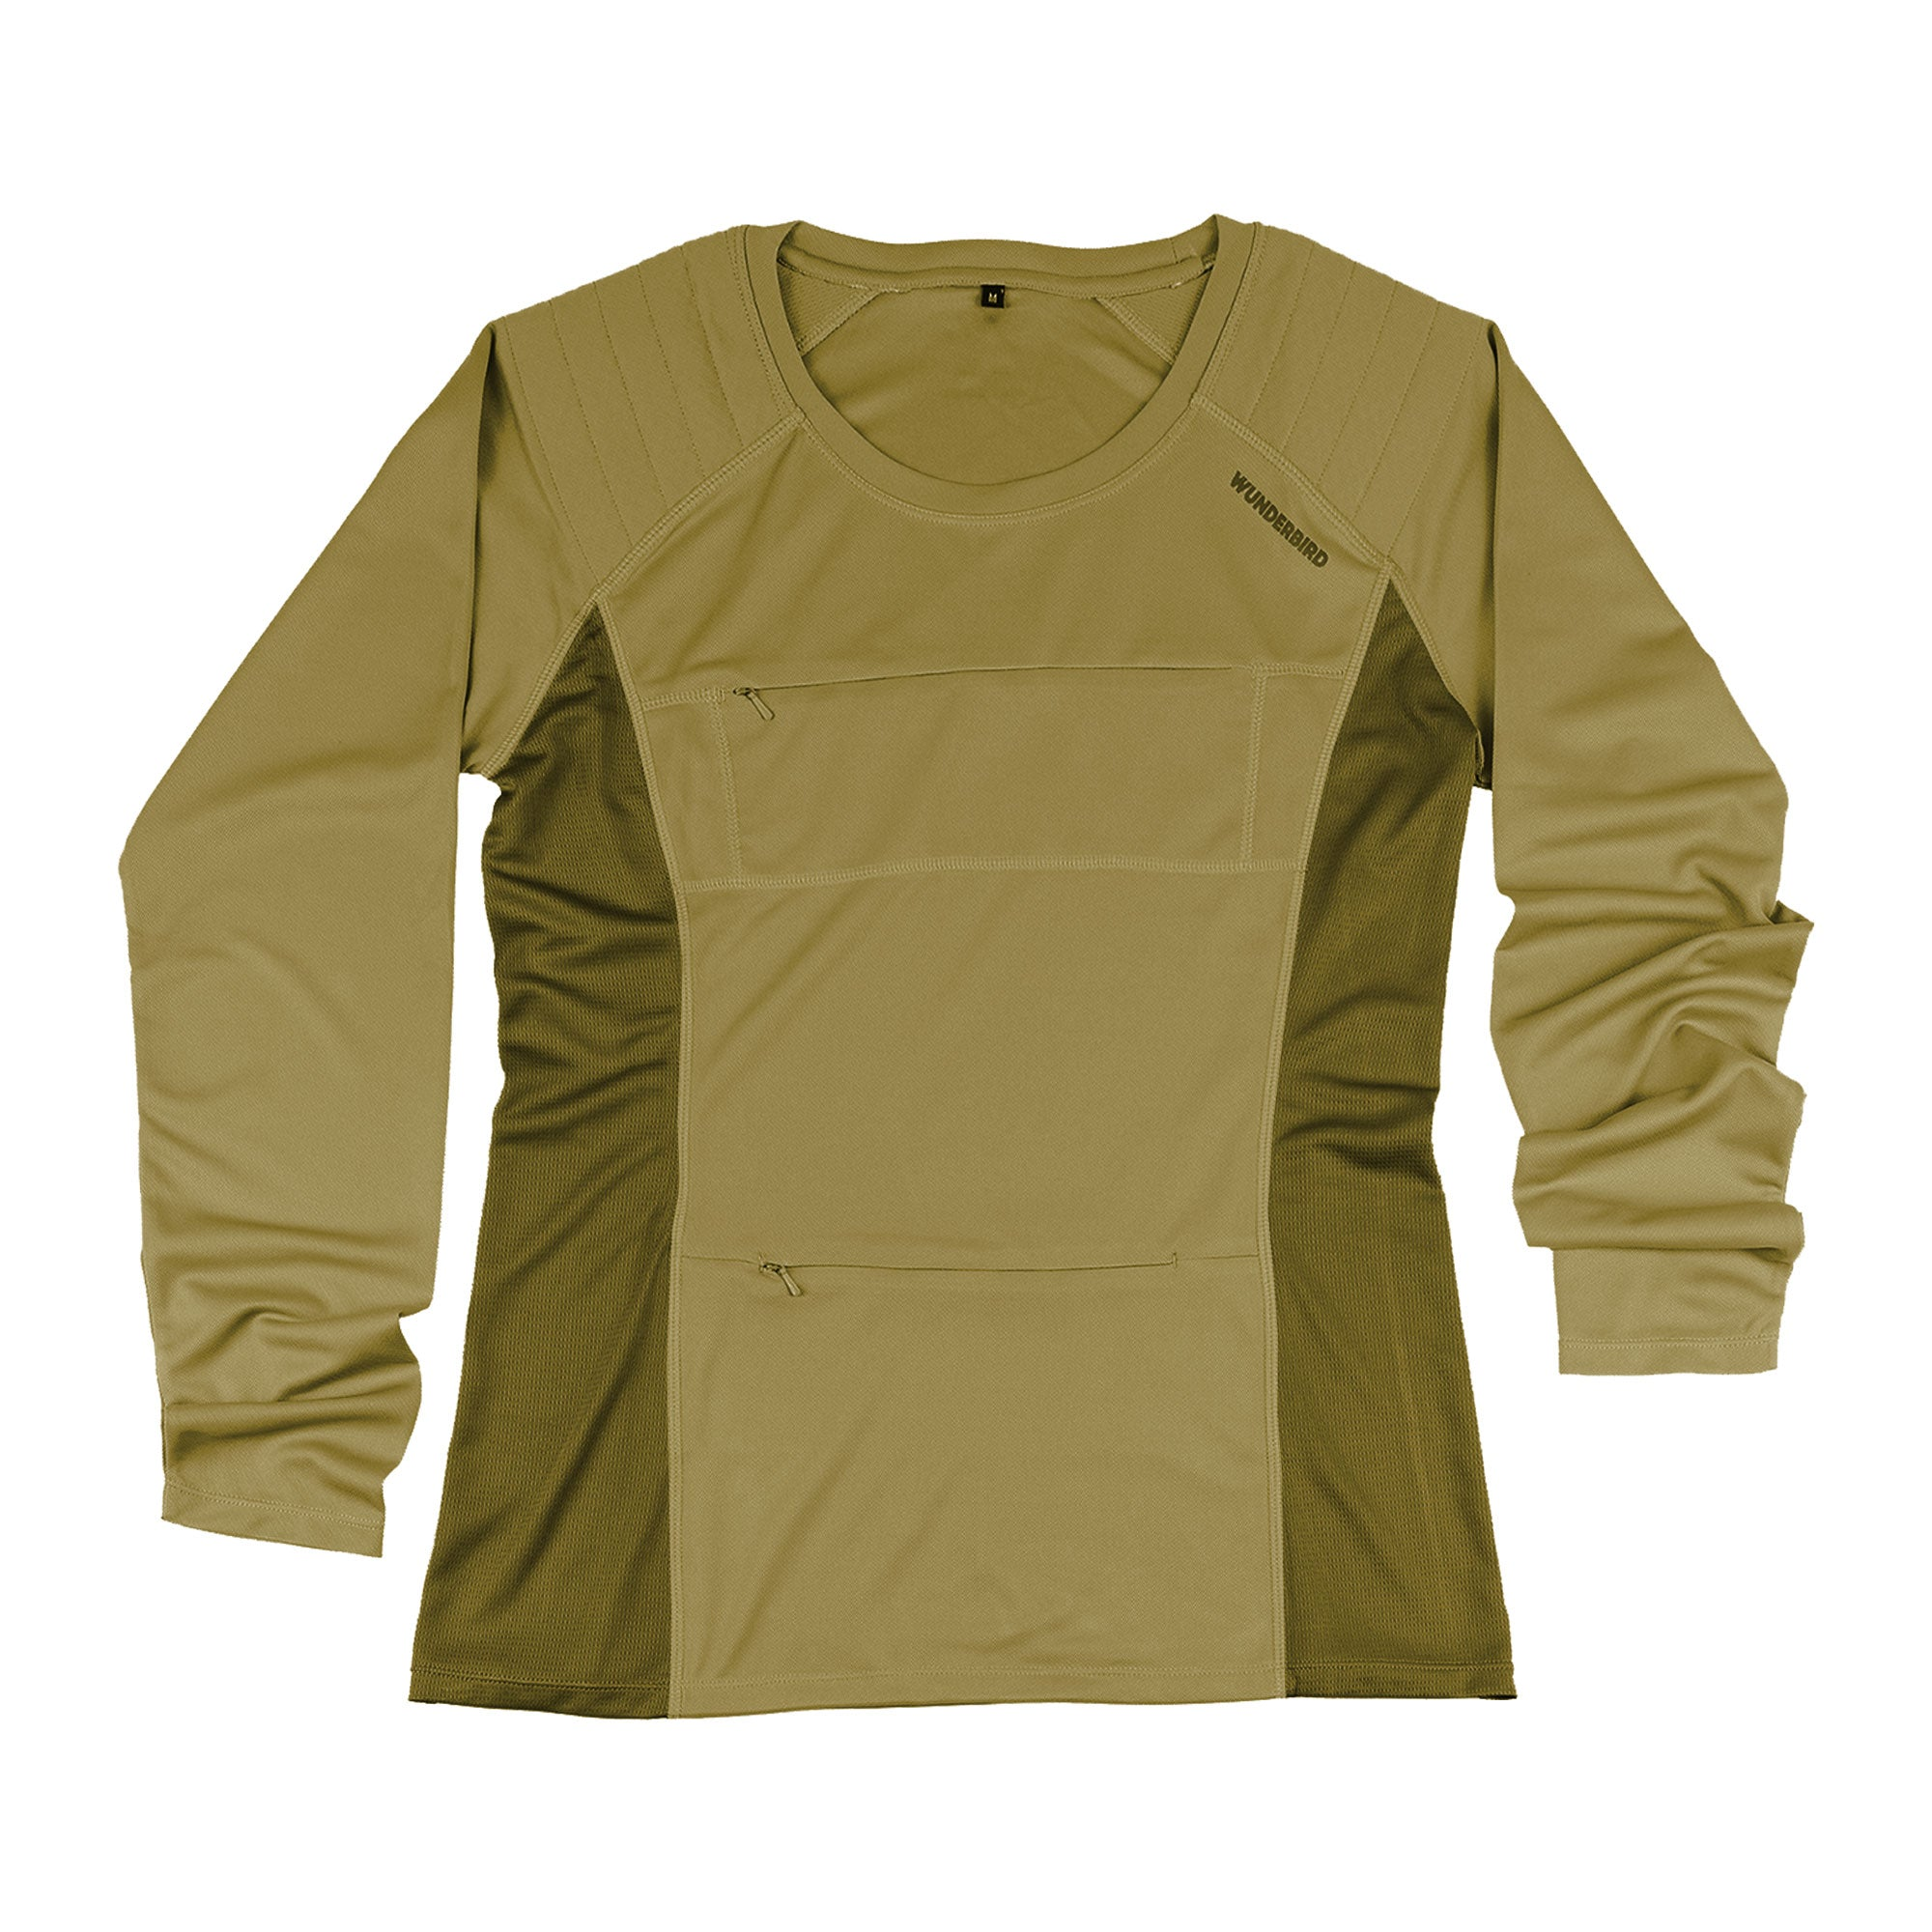 Peregrin Long Sleeved T-shirt for birdwatchers